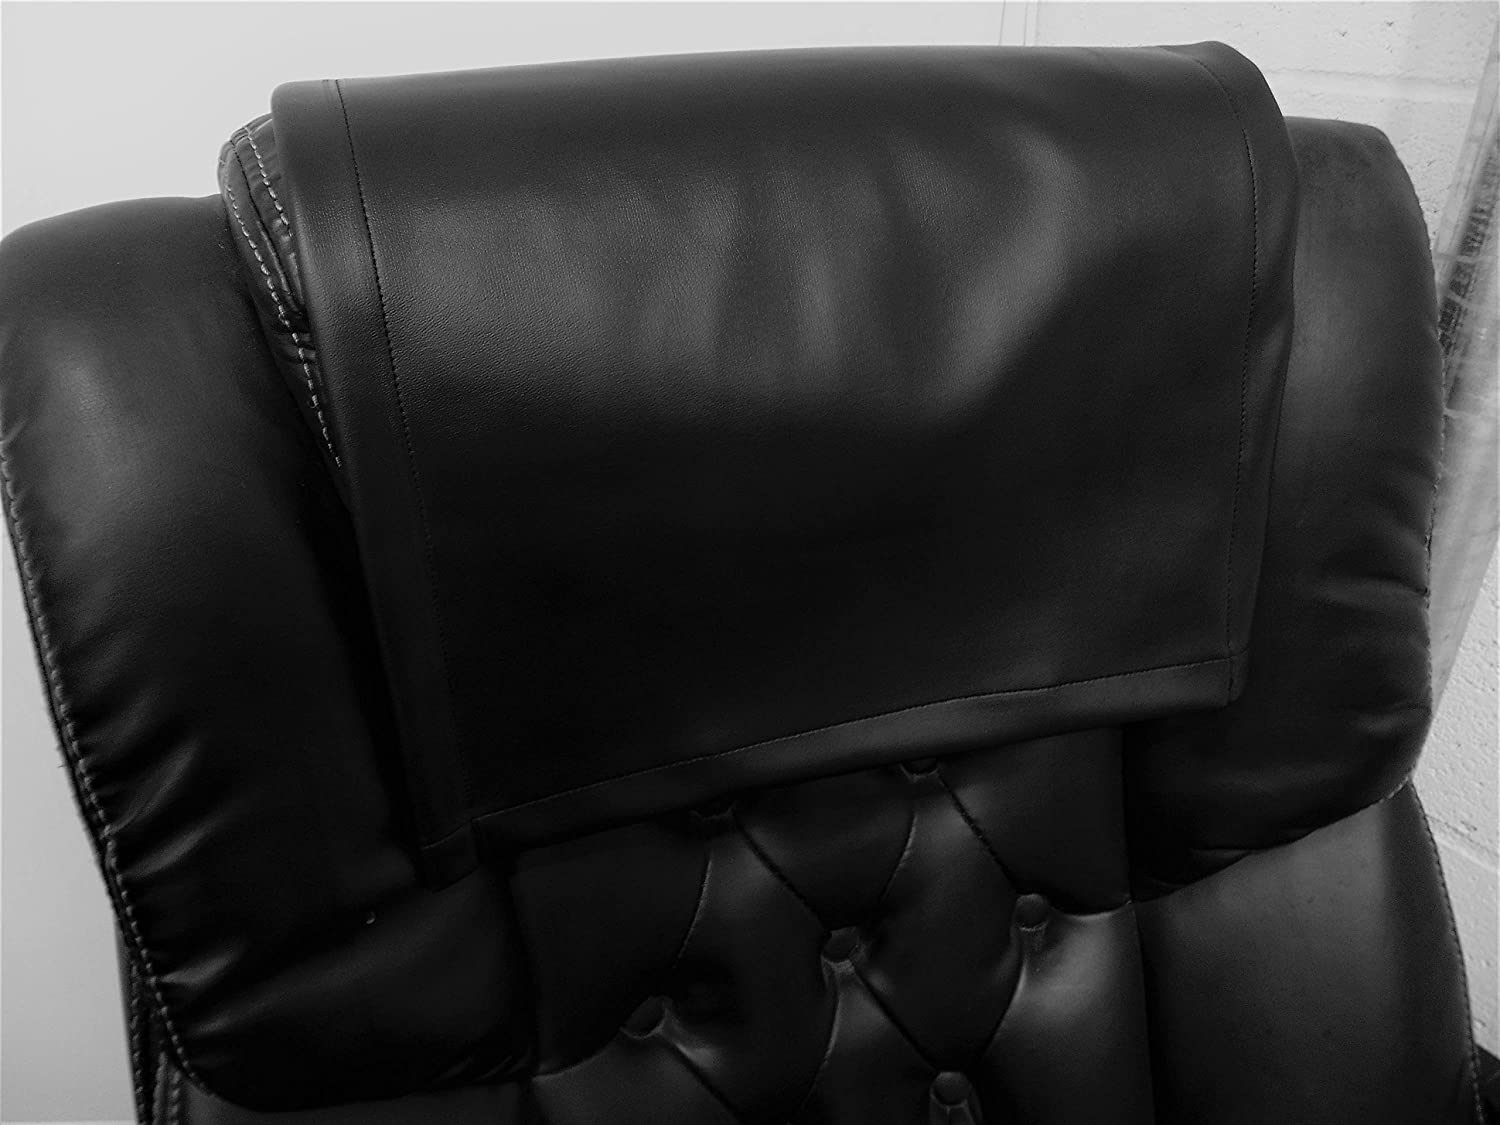 Vinyl, faux leather PVC Black ,15x15 Sofa Loveseat Chaise Theater Seat, RV Cover, Chair Caps Headrest Pad, Recliner Head Cover, Furniture Protector luvfabrics